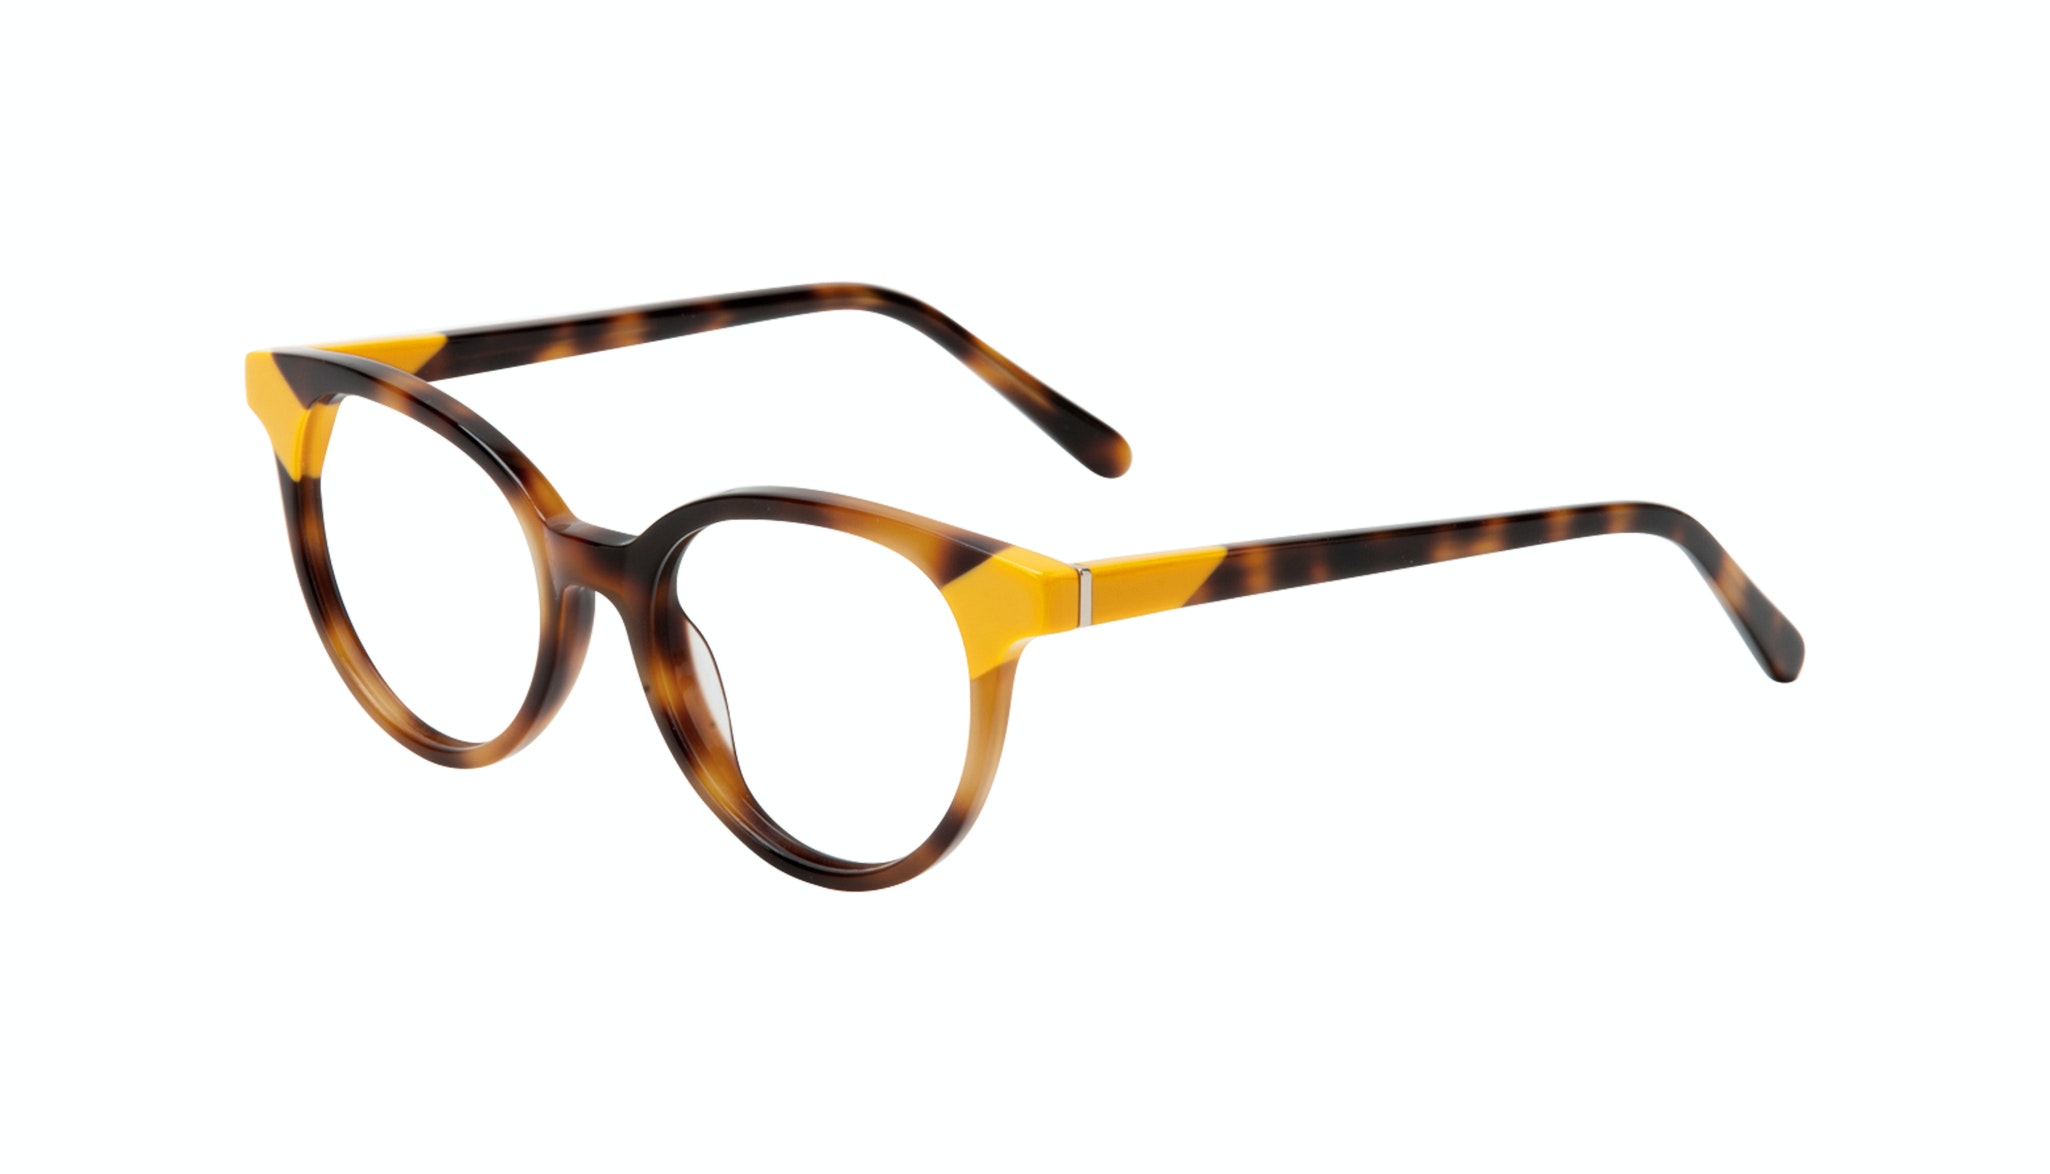 Affordable Fashion Glasses Round Eyeglasses Women Bright Yellow Pop Tilt